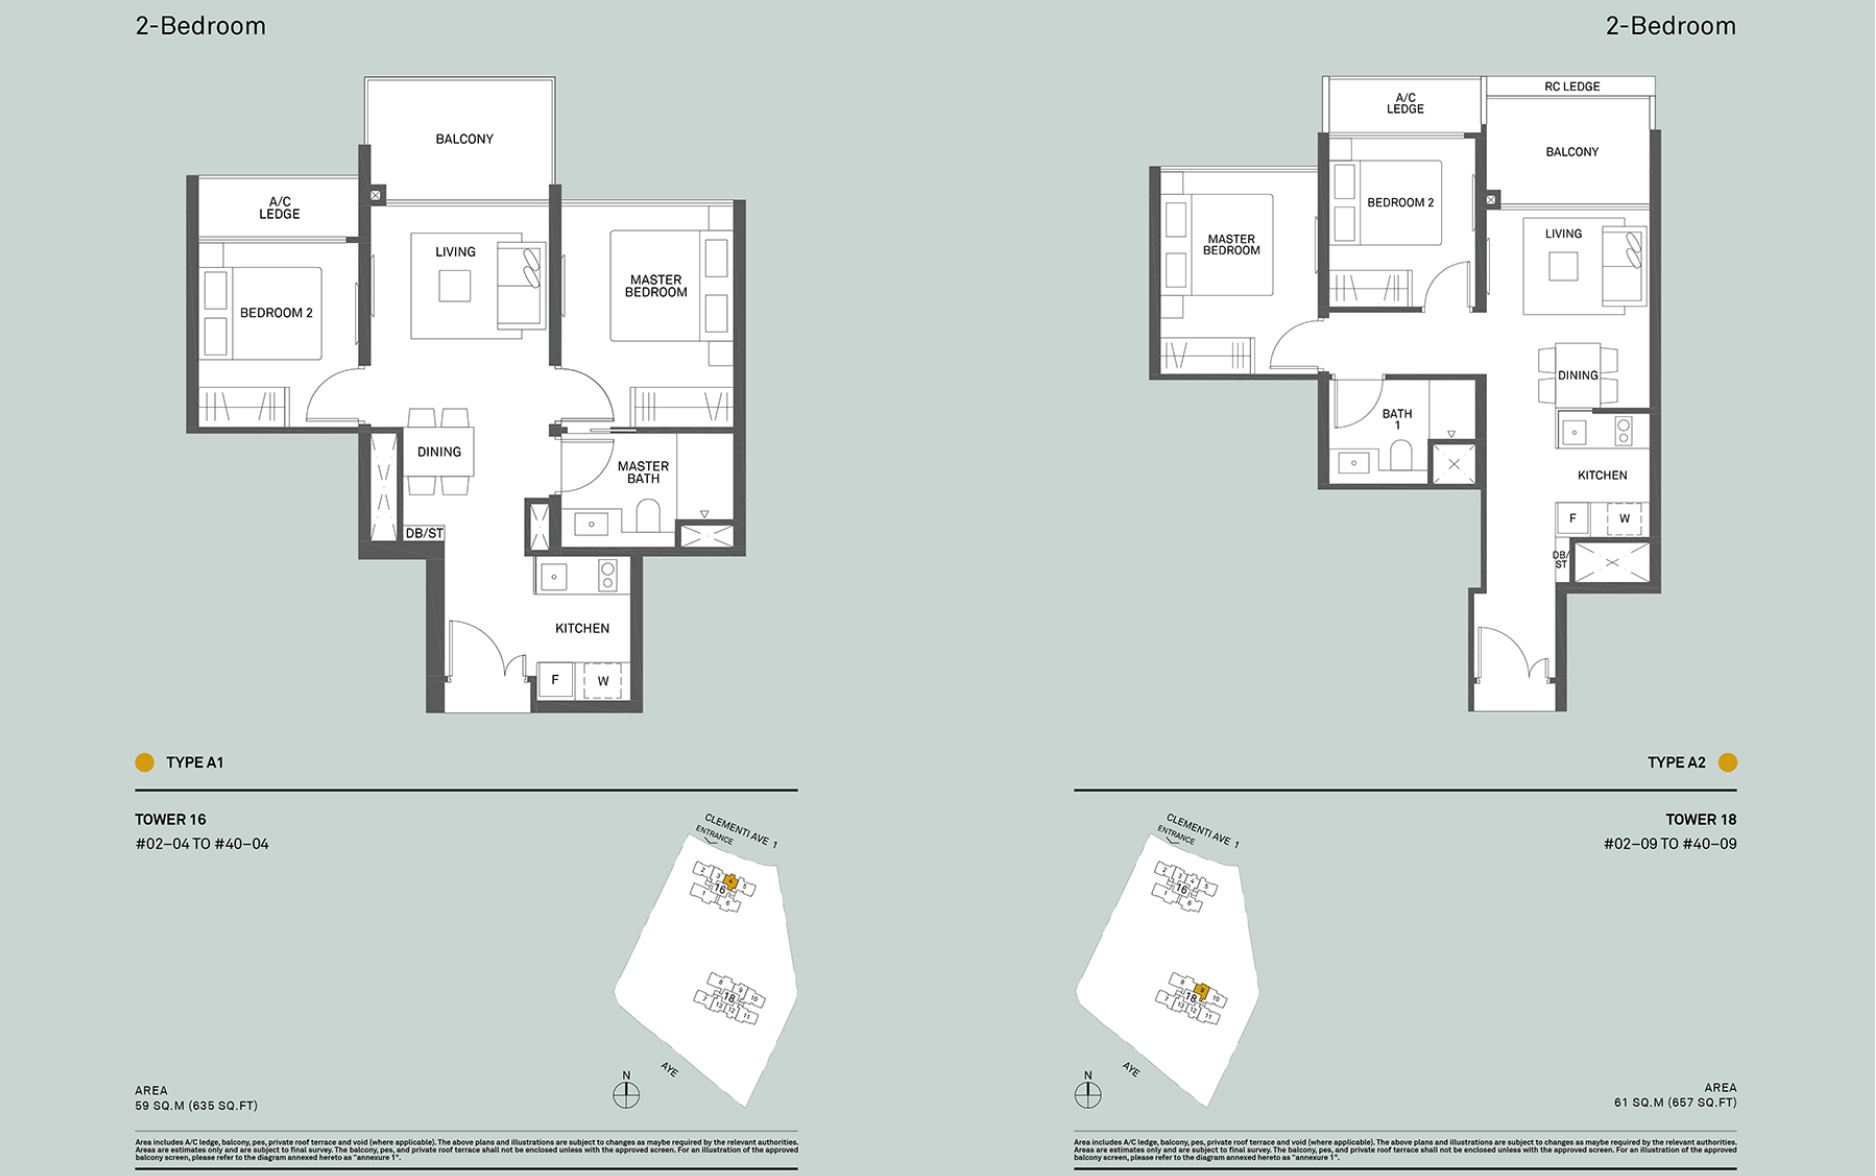 The Clement Canopy FloorPlan - 2 Bedroom Type A1 & A2